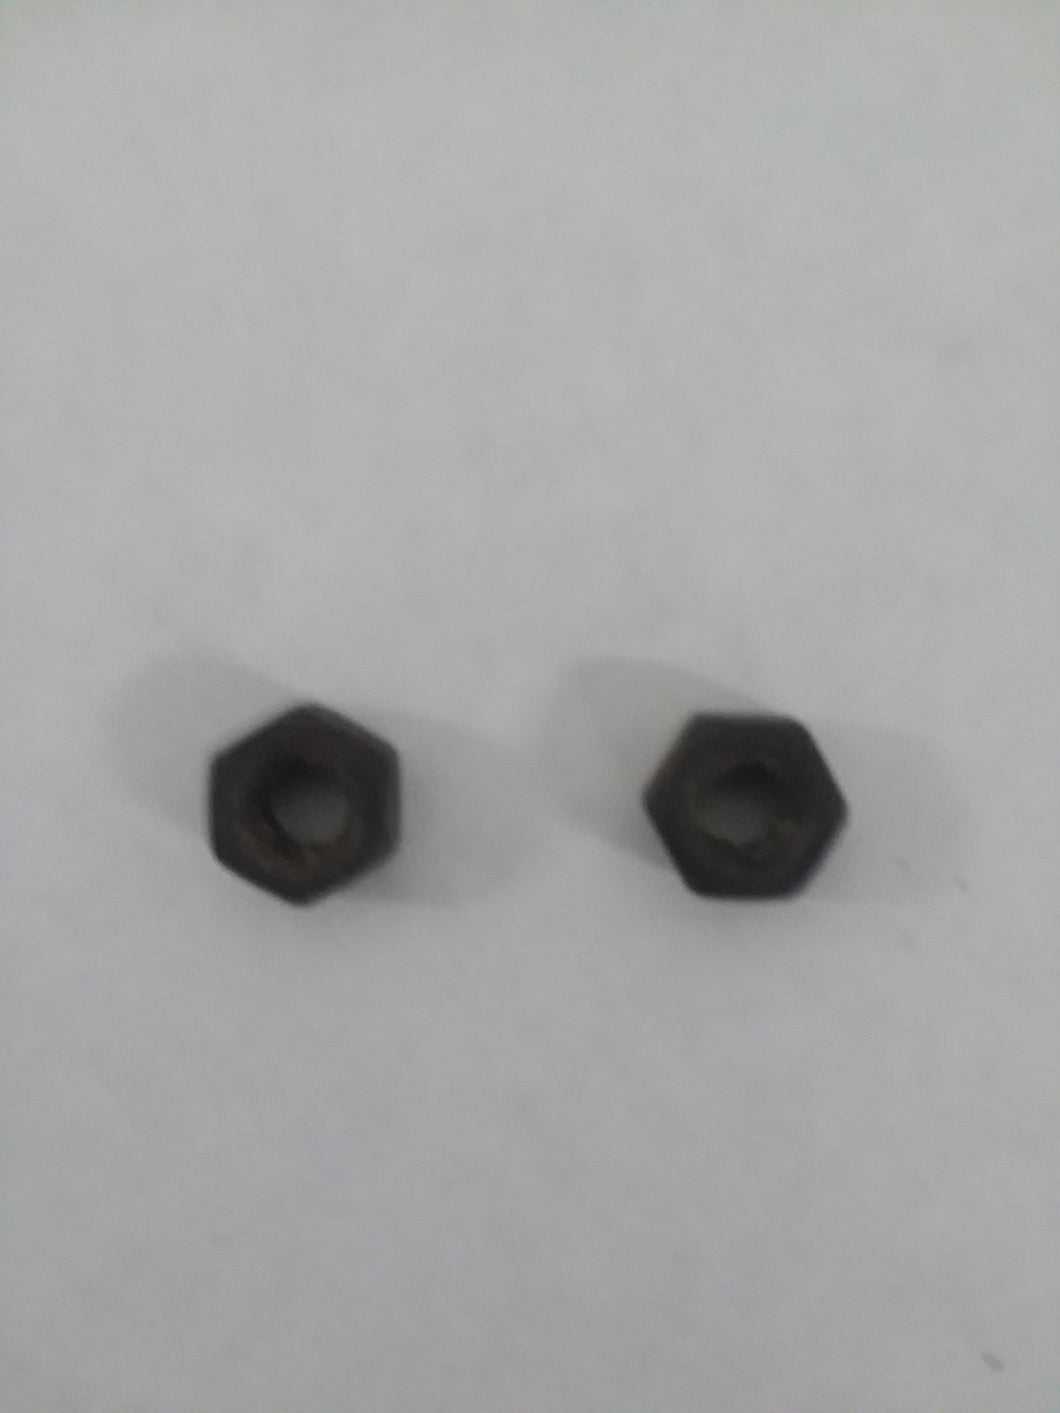 Berkshire Heat Treated Steel Stop Buttons